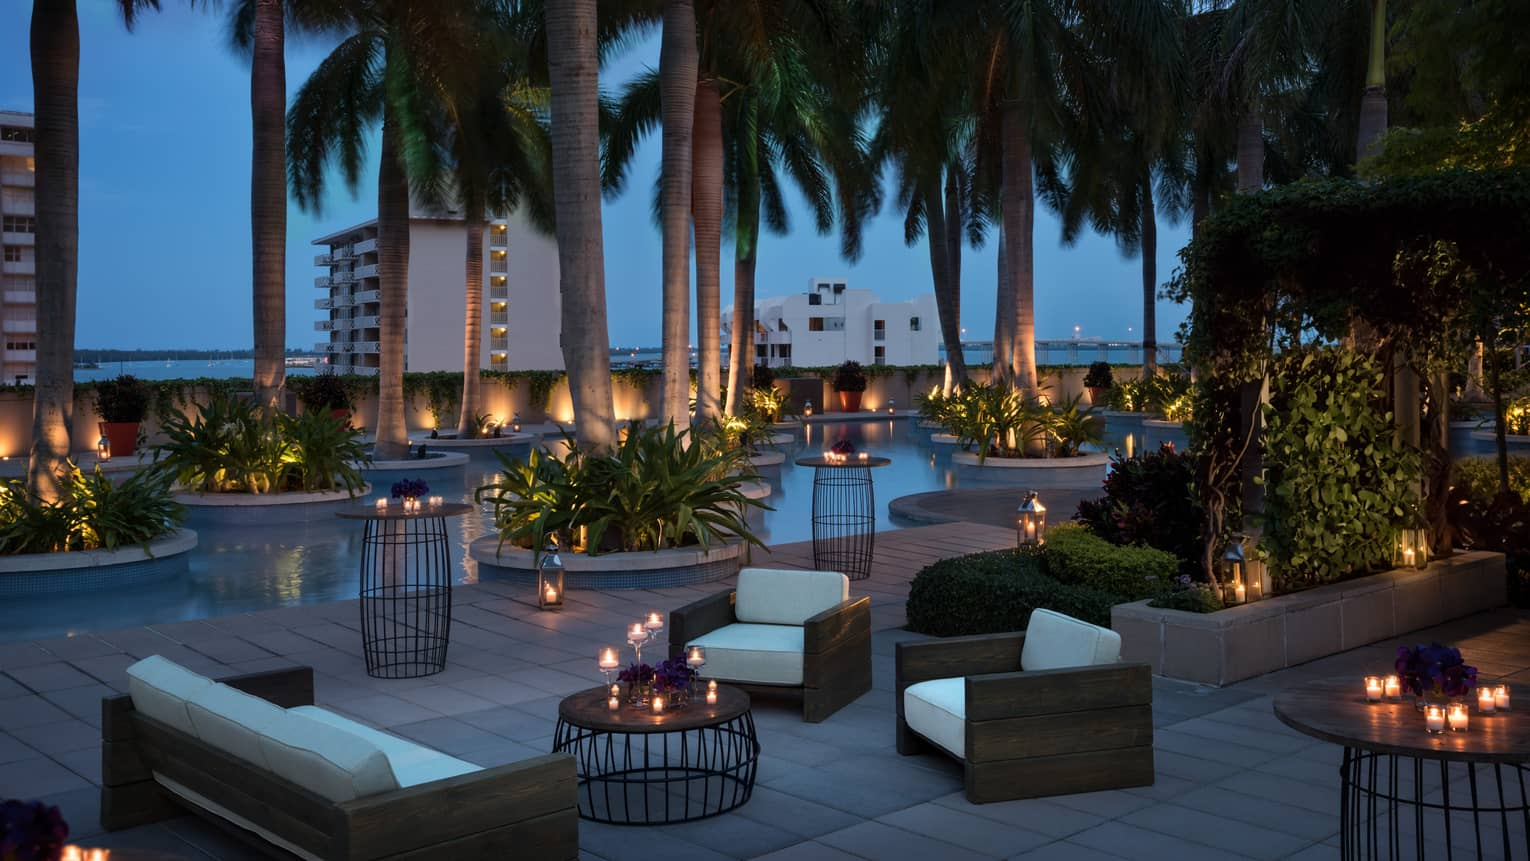 Plush white patio sofas and chairs, candle-lit tables under palm trees at night